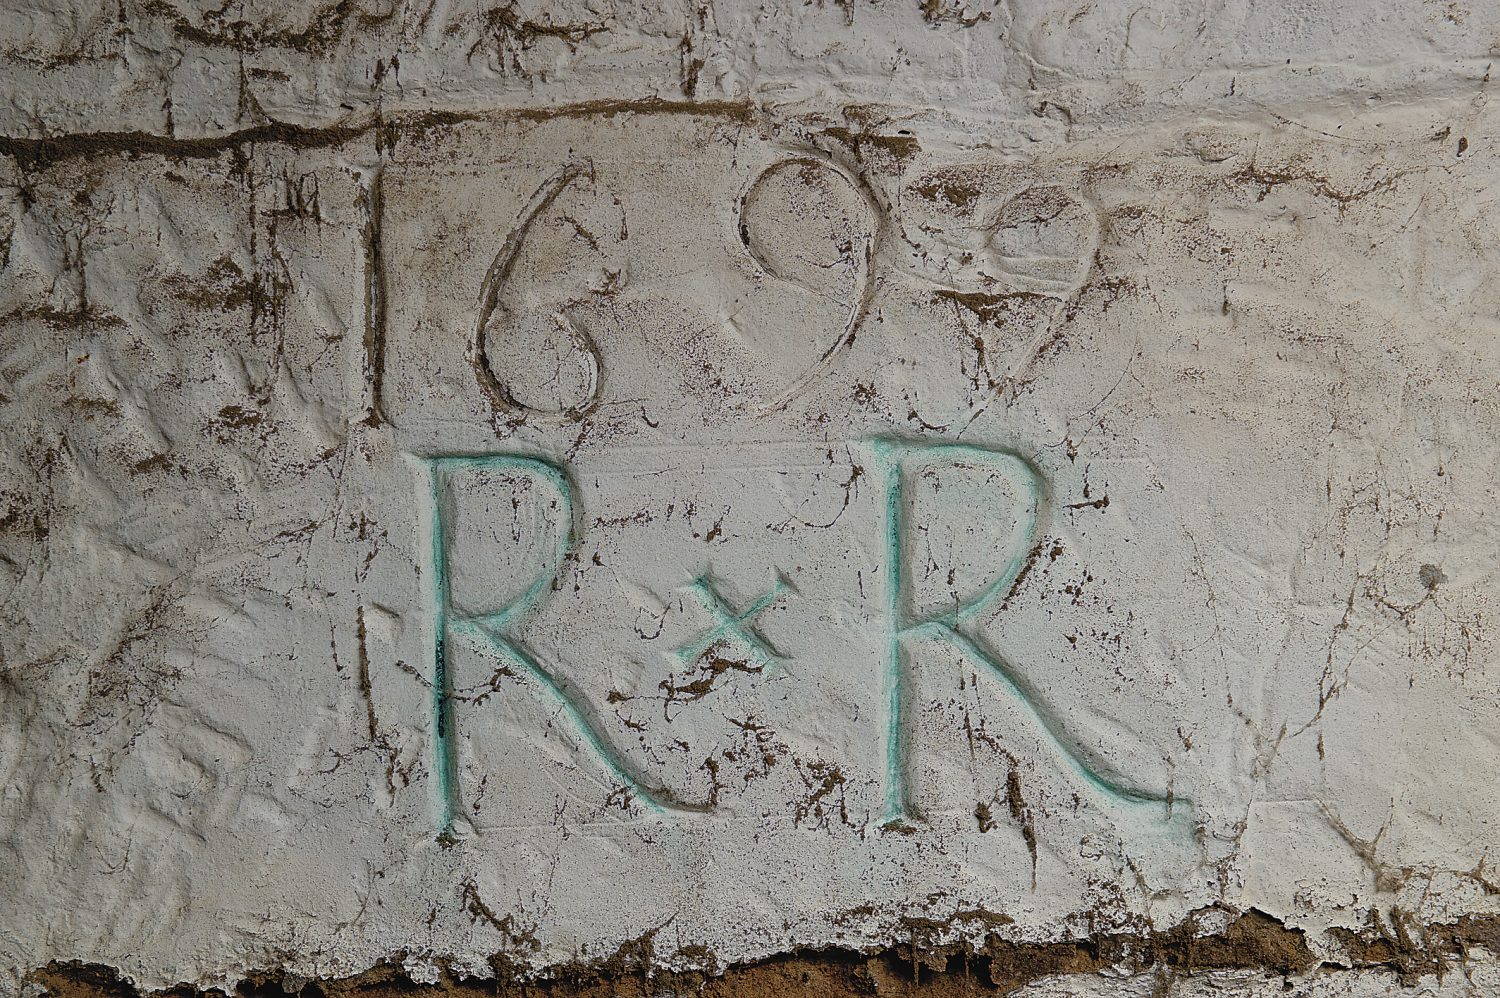 the carvings made into the cellar wall during the reign of William of Orange